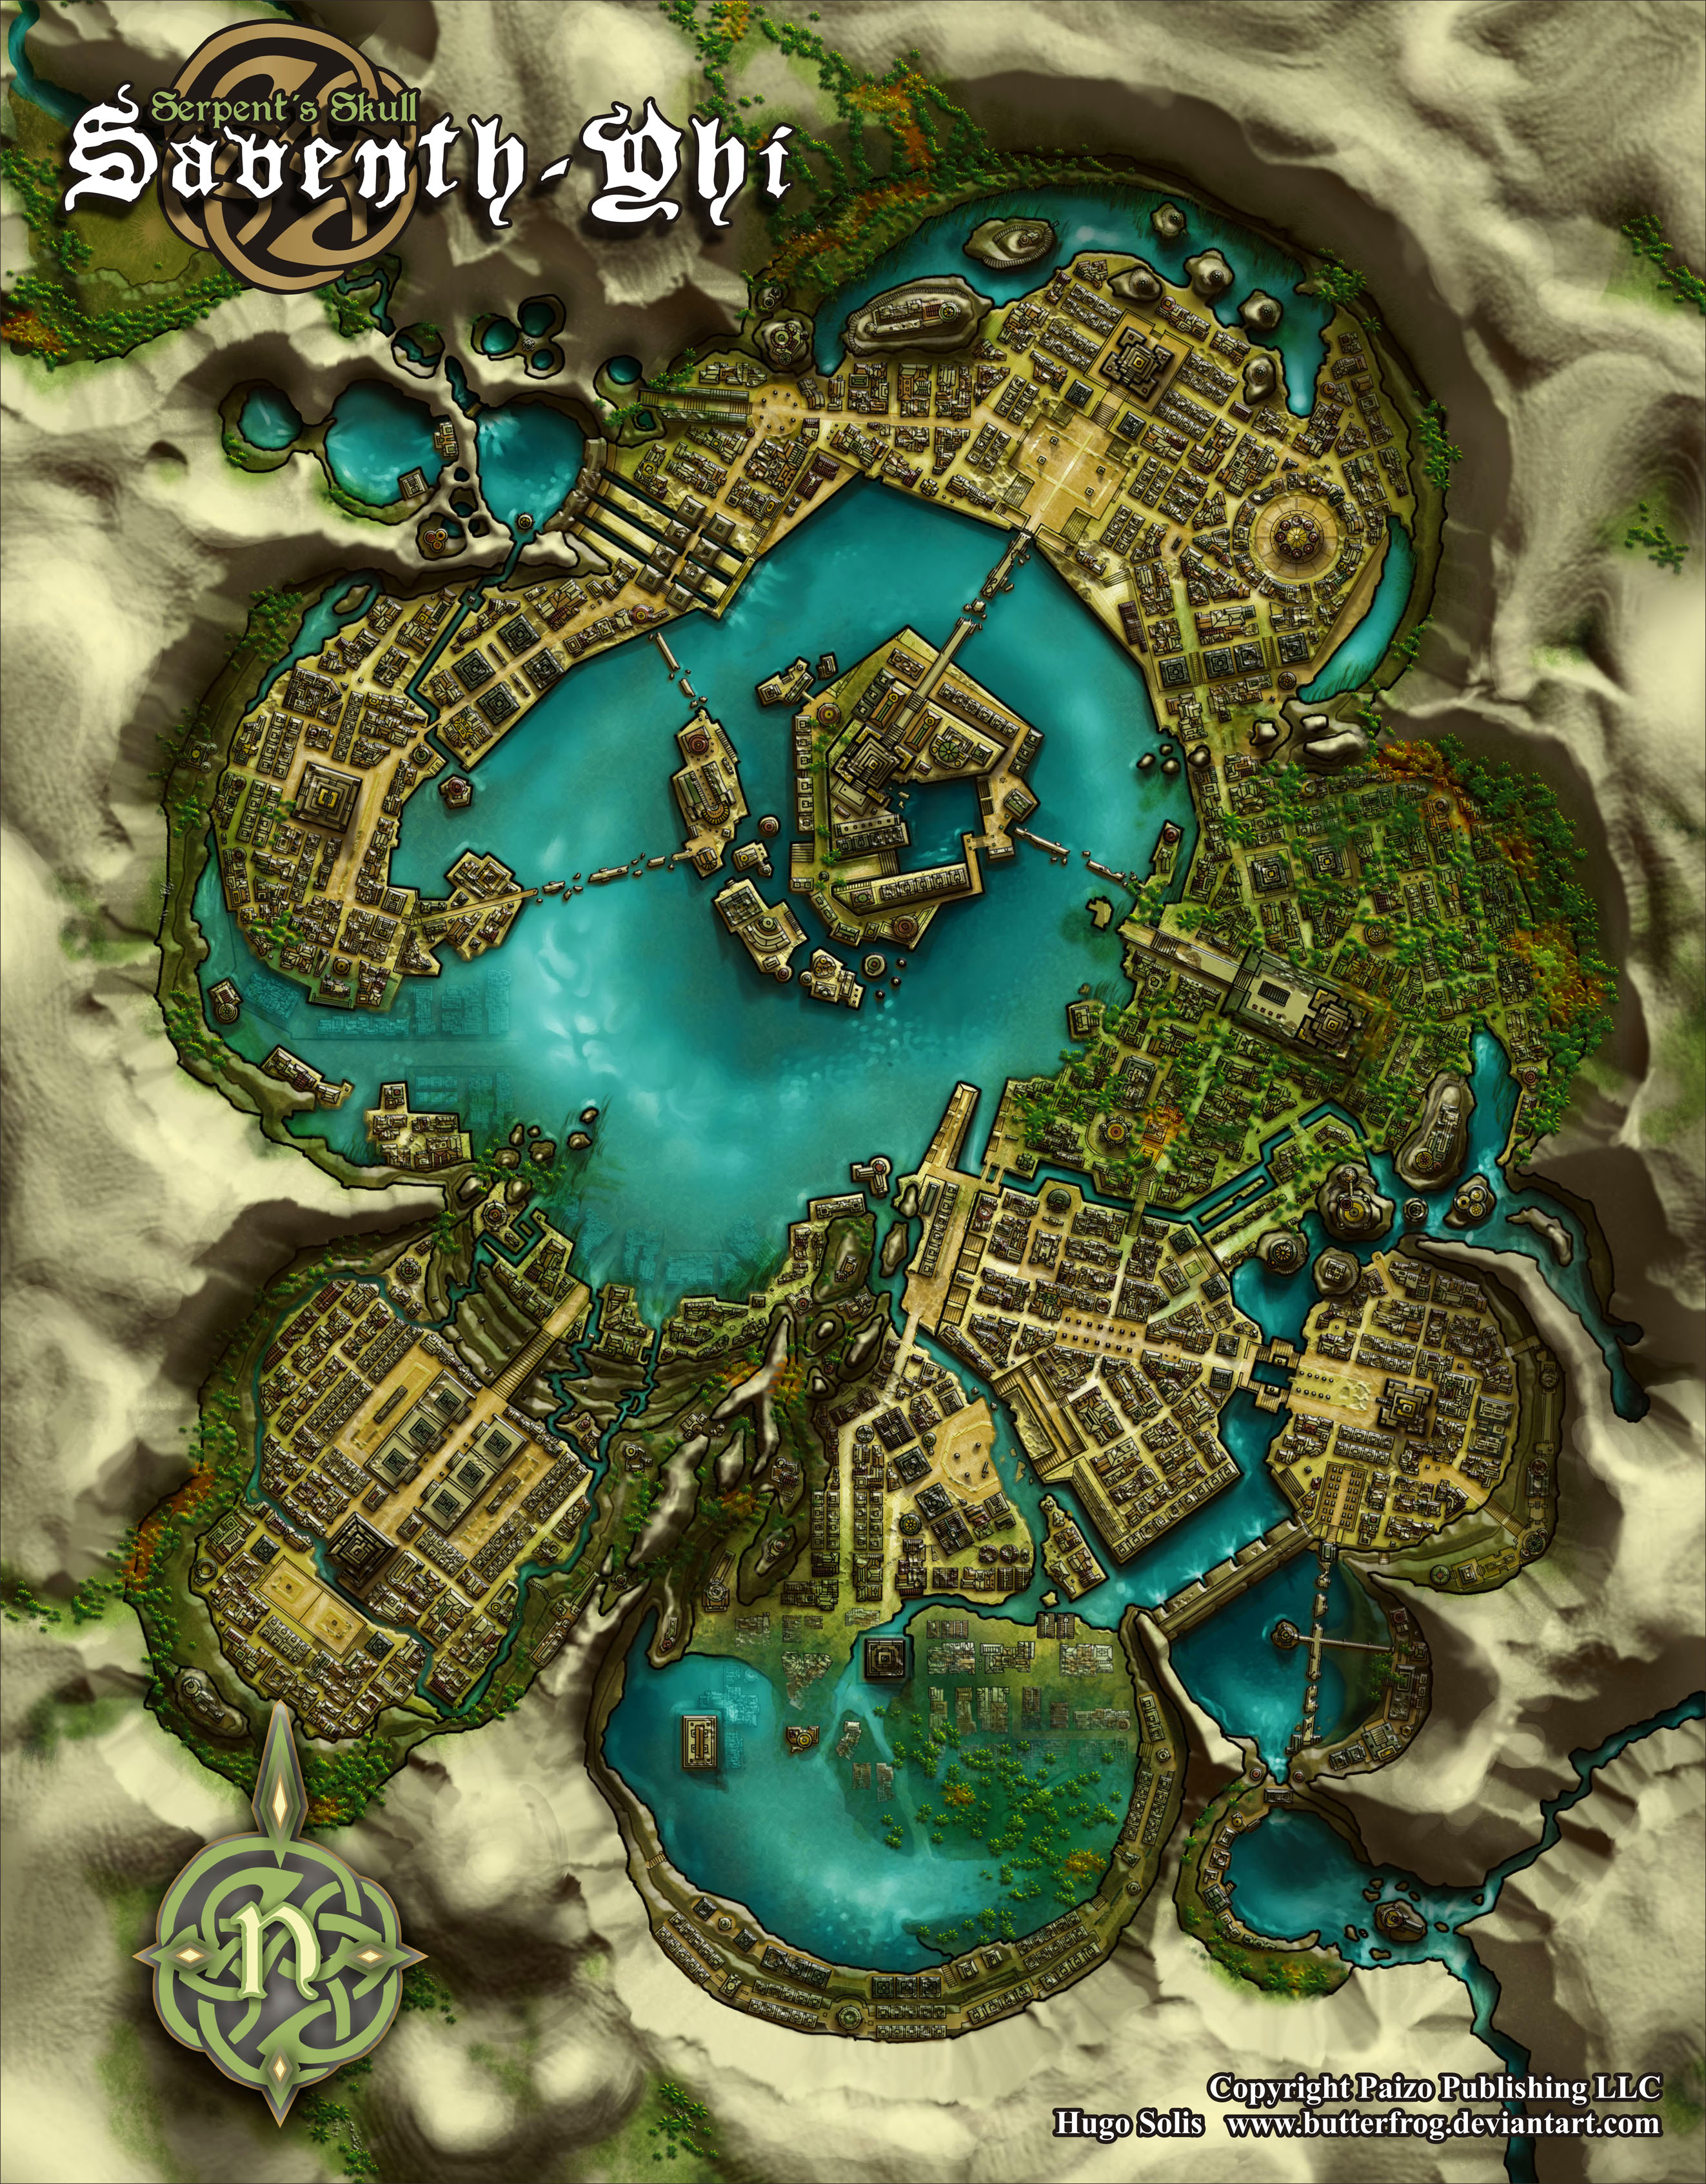 Saventh Yhi